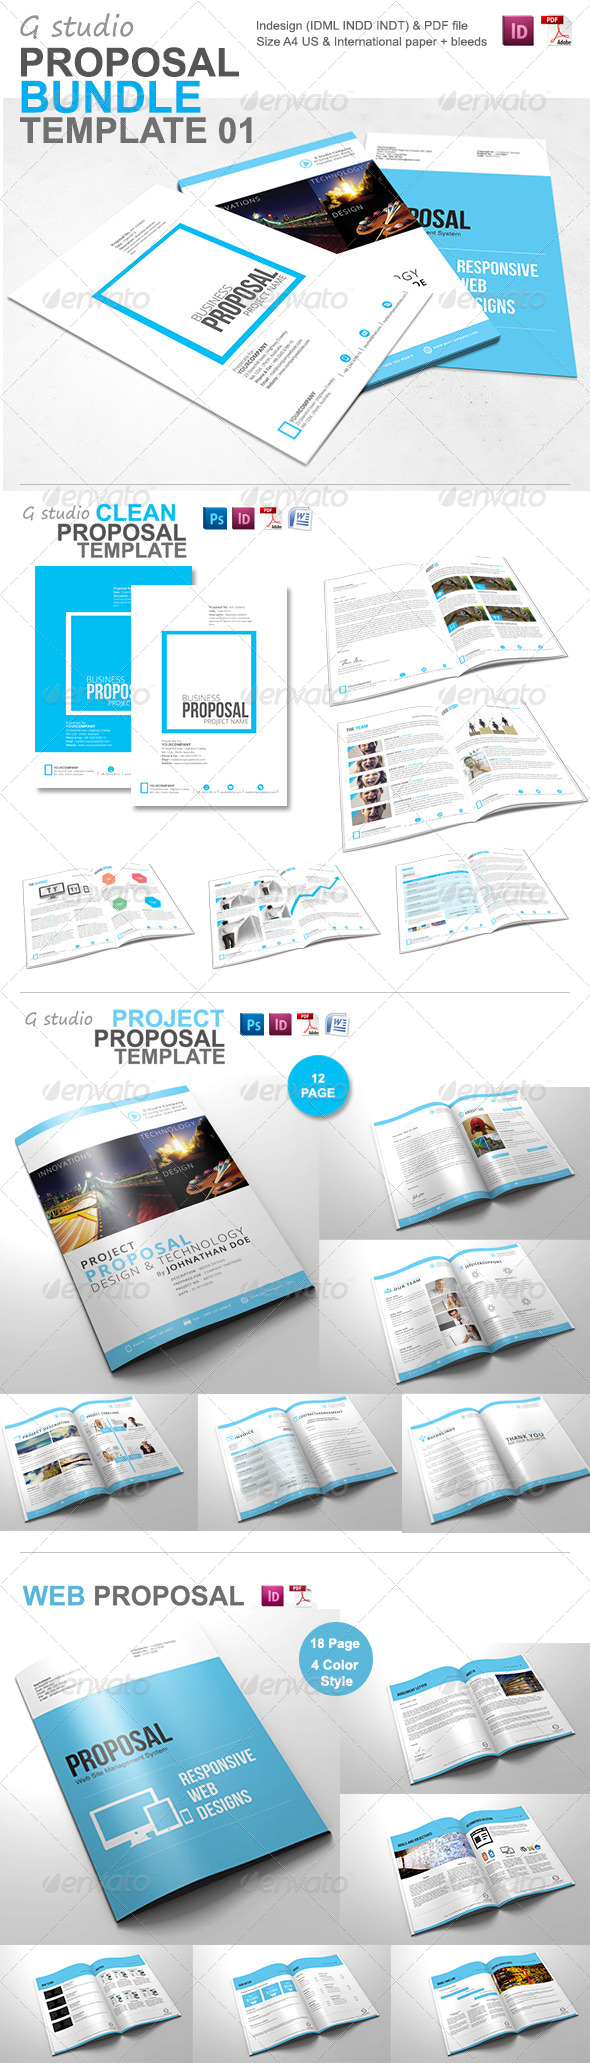 Gstudio Proposal Bundle 01